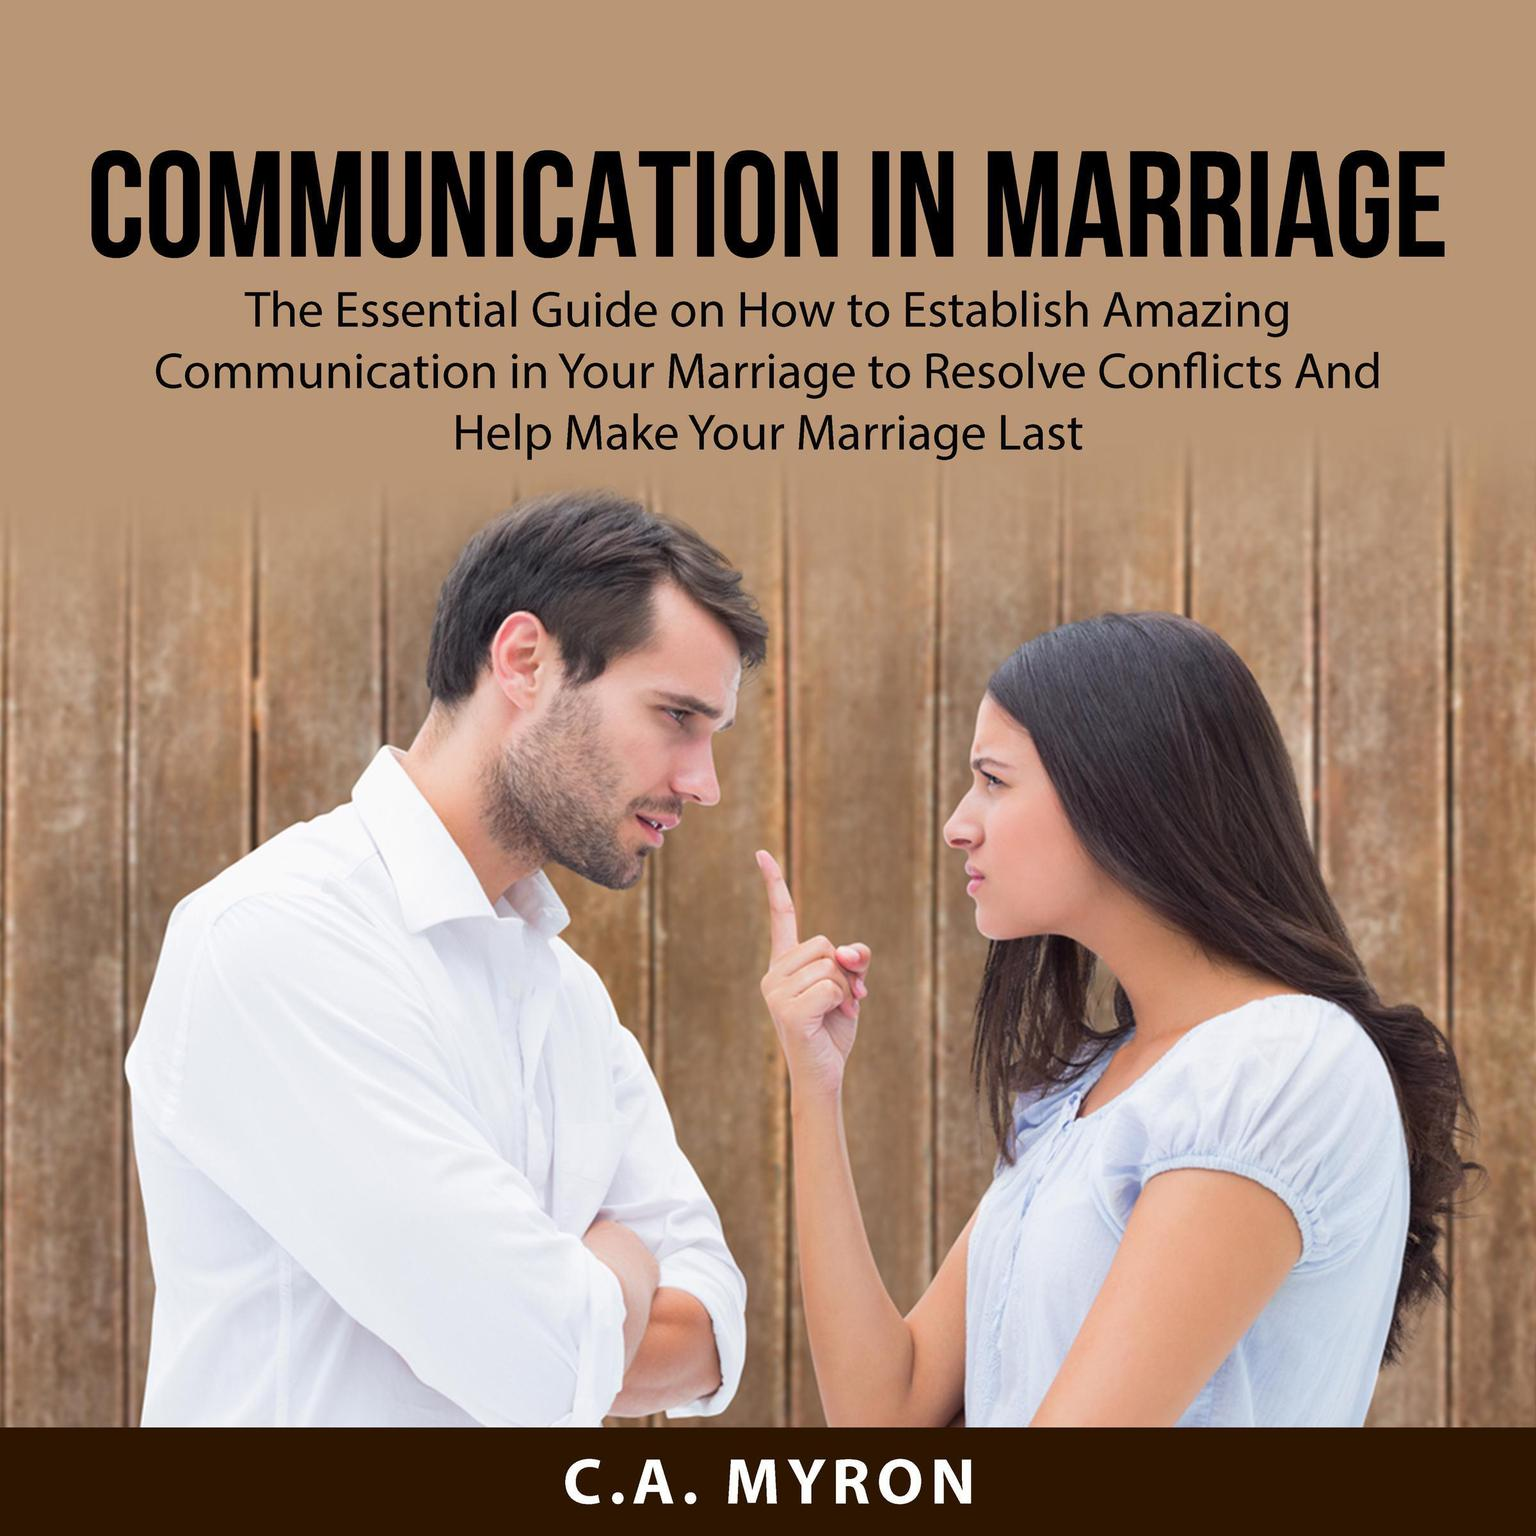 Communication in Marriage: The Essential Guide on How to Establish Amazing Communication in Your Marriage to Resolve Conflicts And Help Make Your Marriage Last  Audiobook, by C.A. Myron